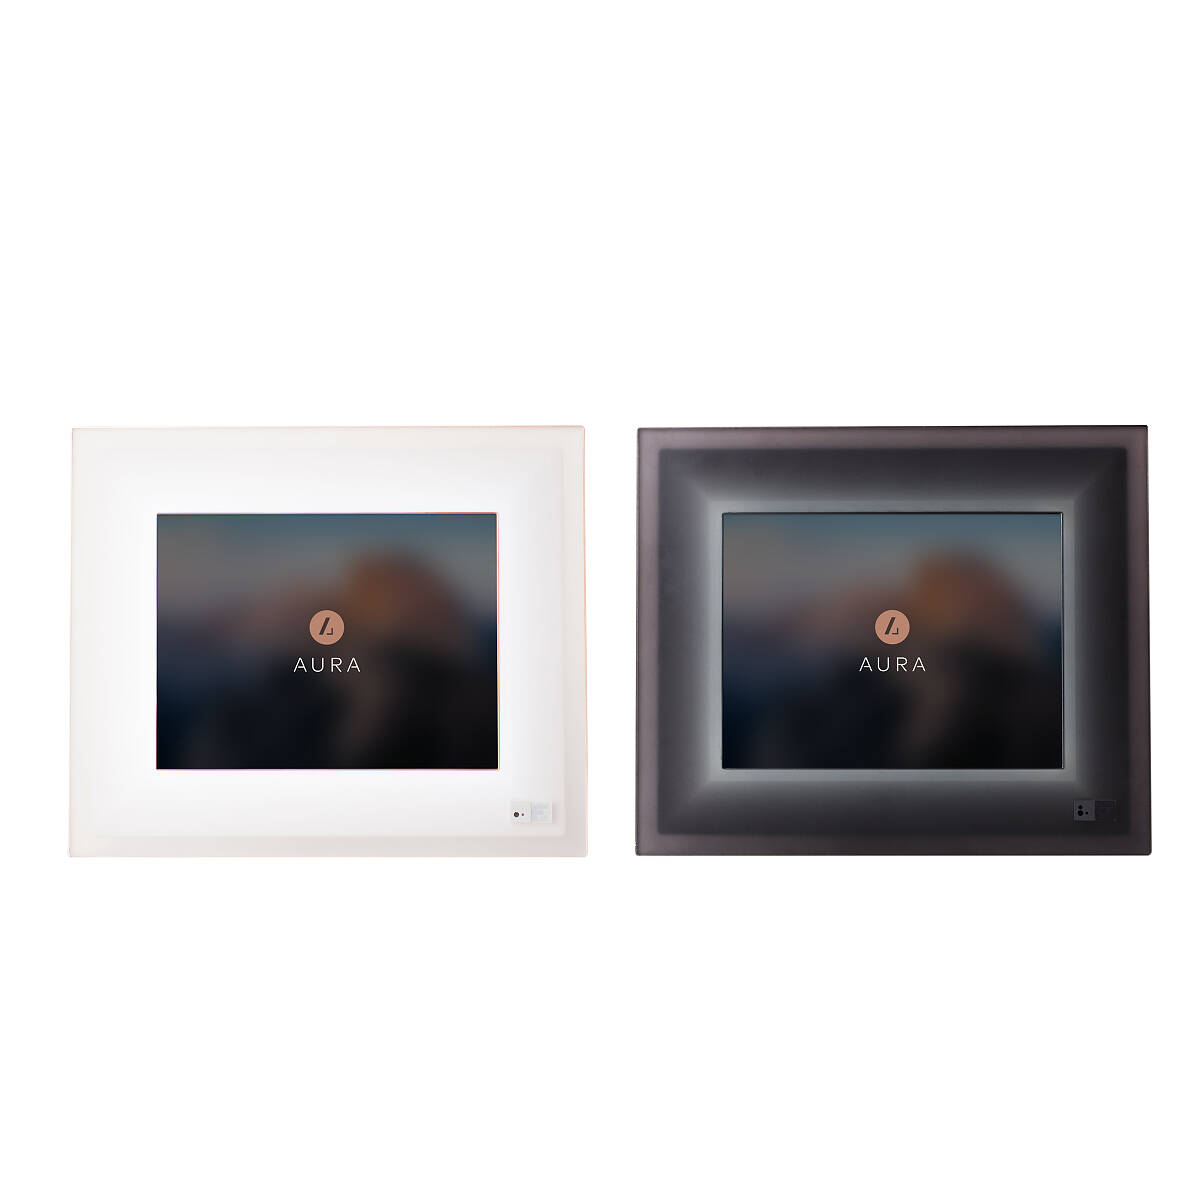 Aura Smart Picture Frame | Digital Frame, Photo Sharing | UncommonGoods